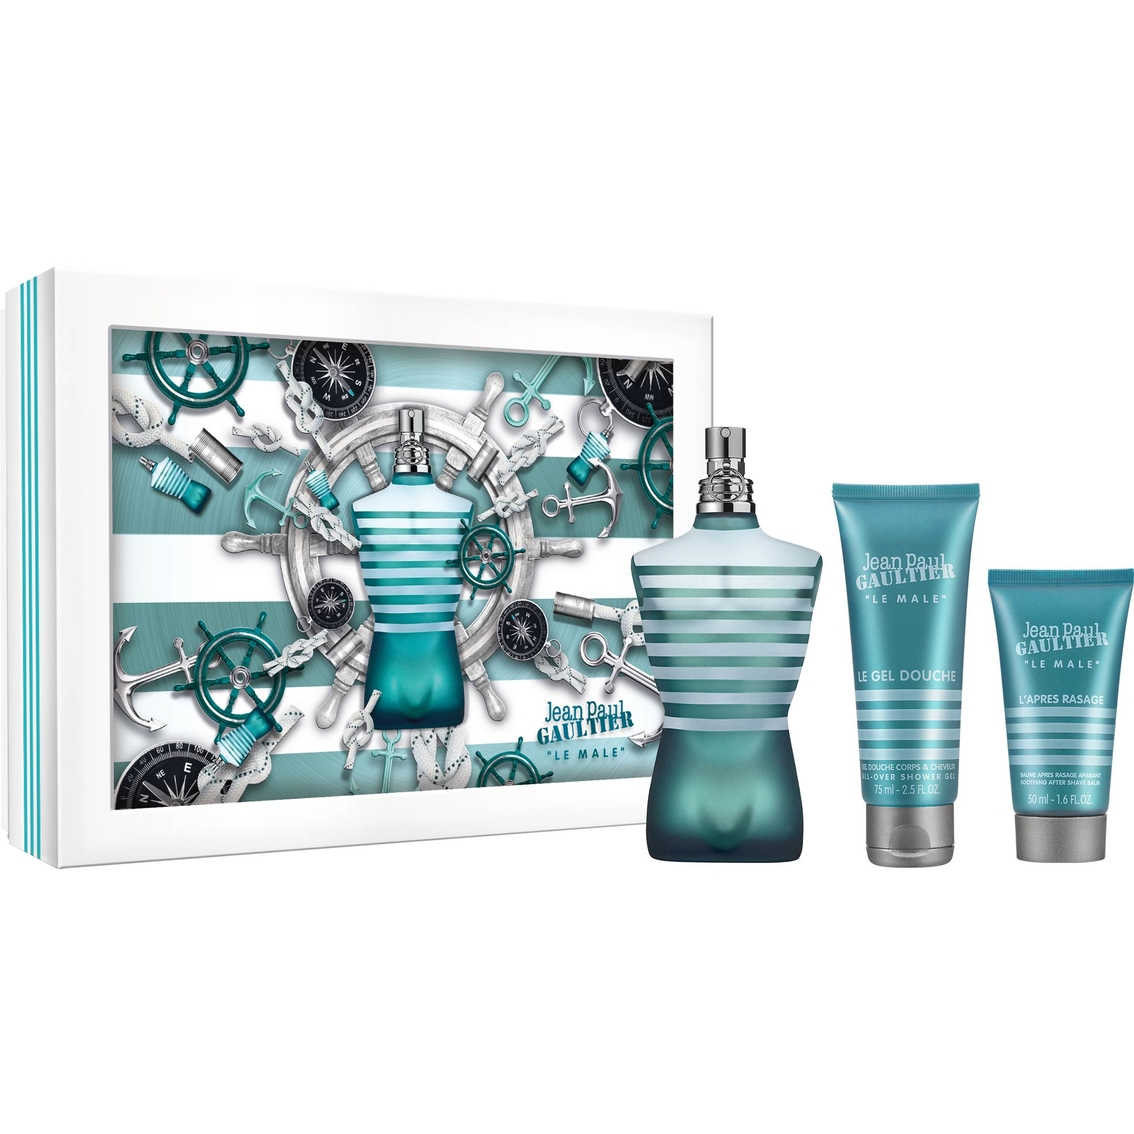 jean paul gaultier mens le male gift set gifts sets for him beauty health shop the exchange. Black Bedroom Furniture Sets. Home Design Ideas